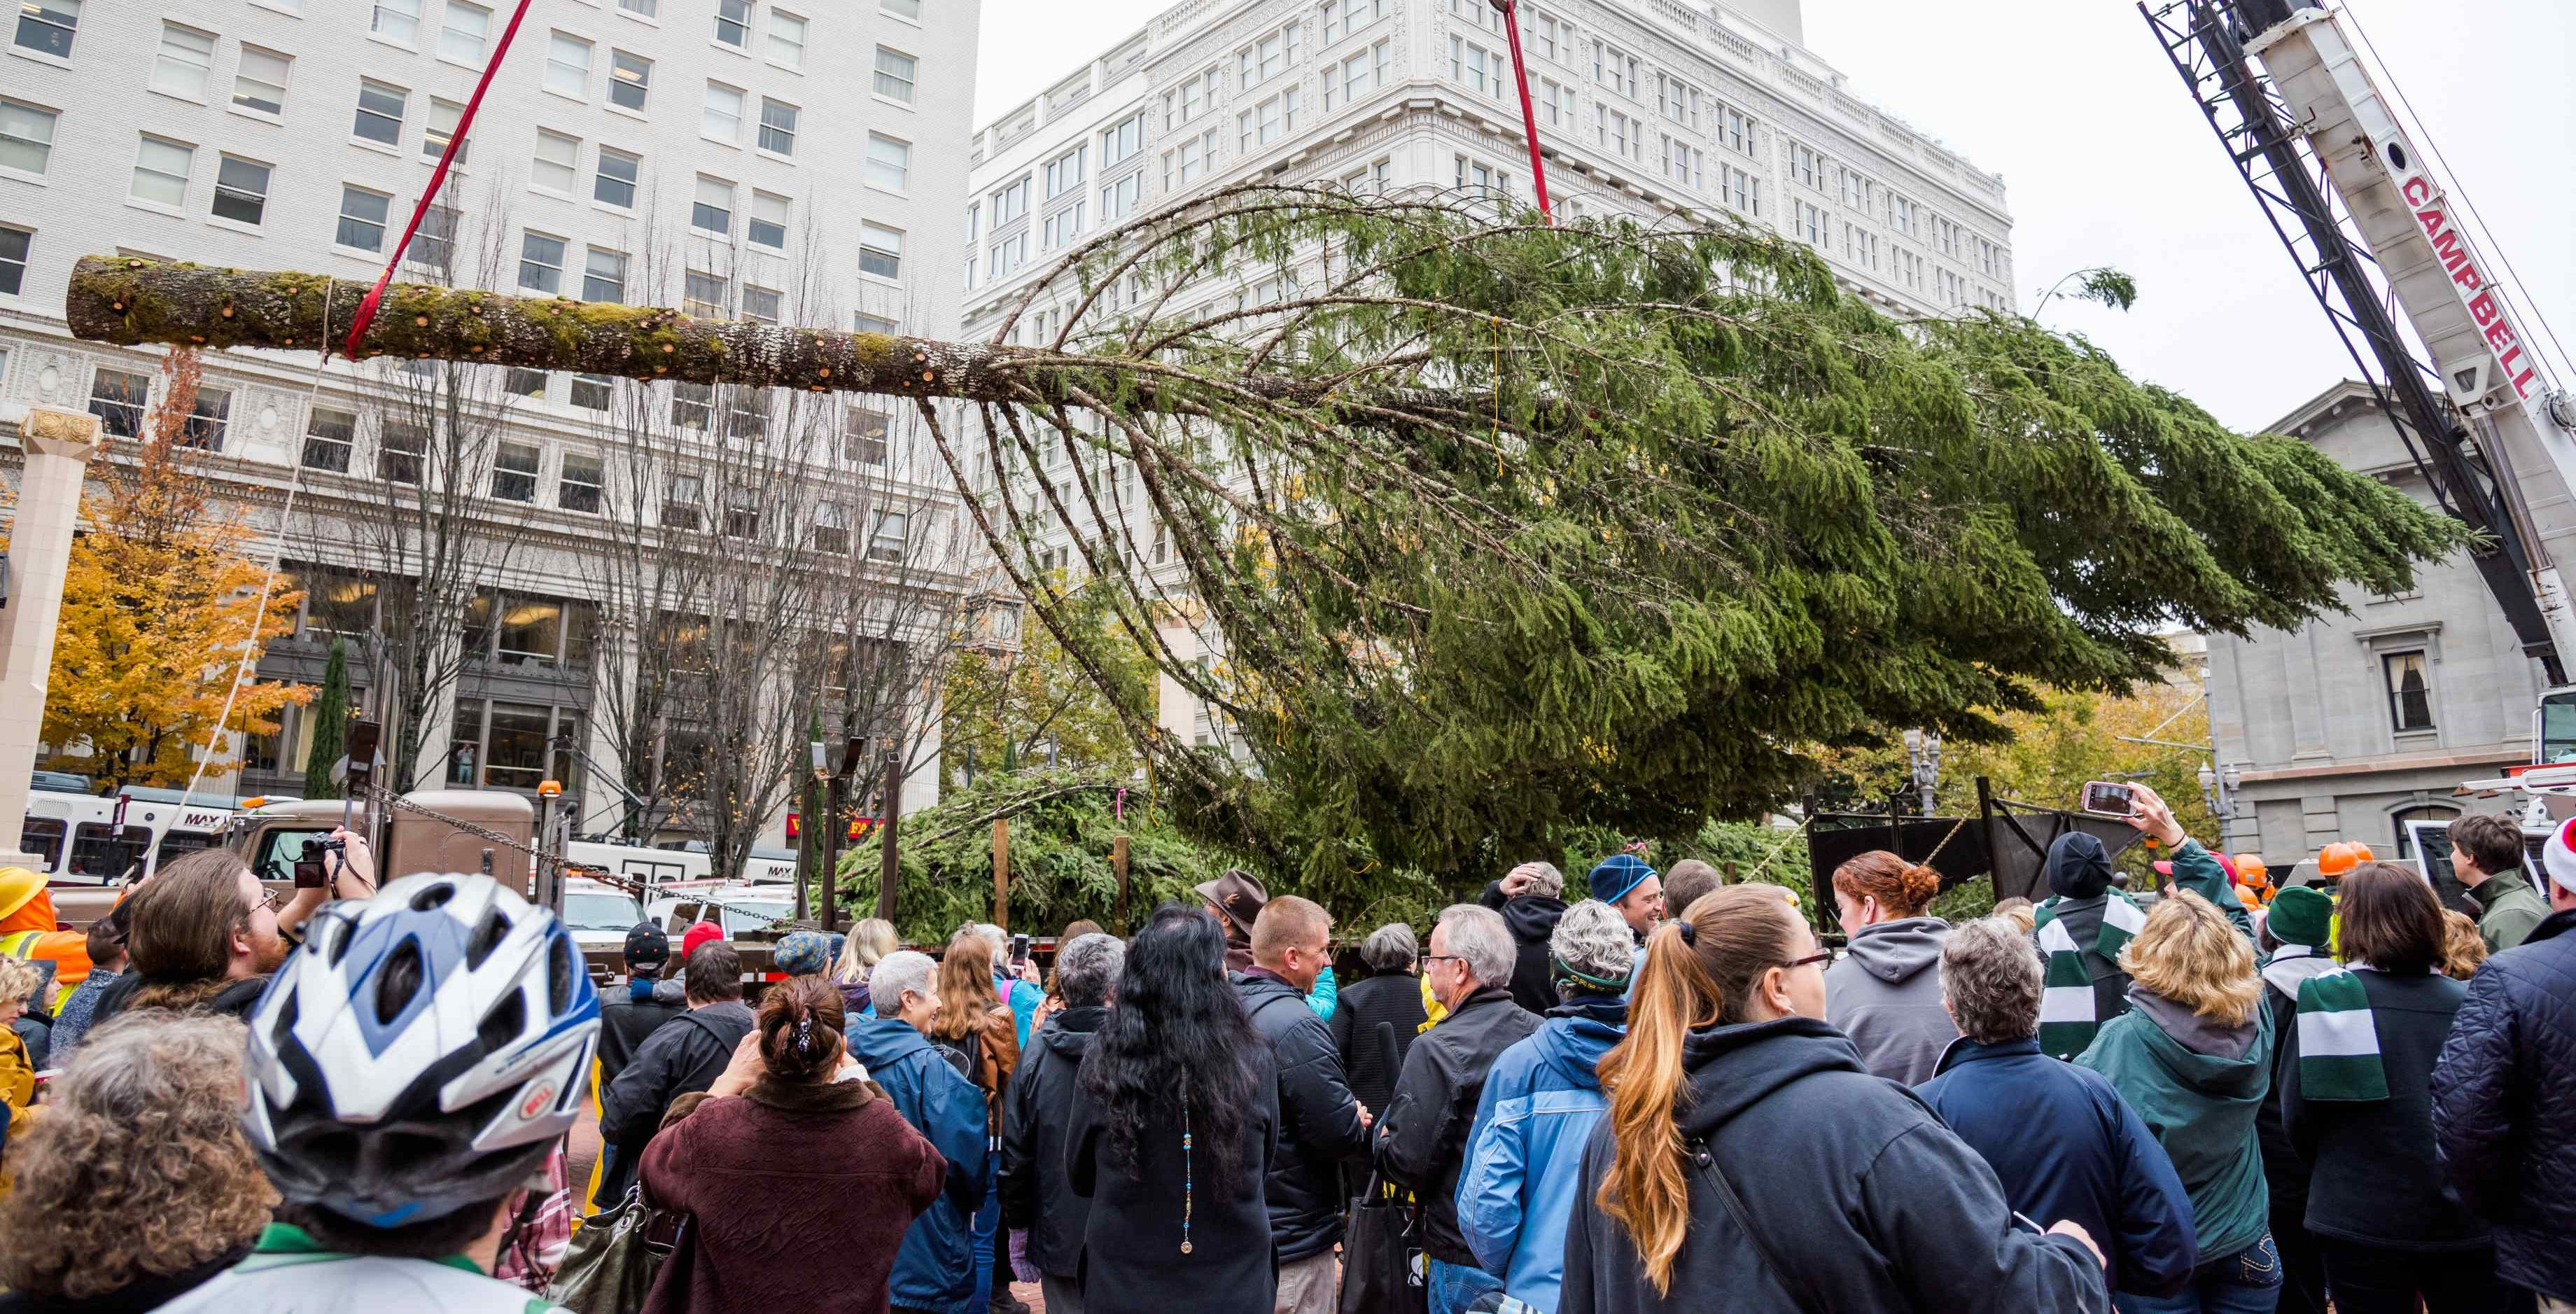 The City of Portland's Tree is Arriving At Noon on Friday, November 15th!